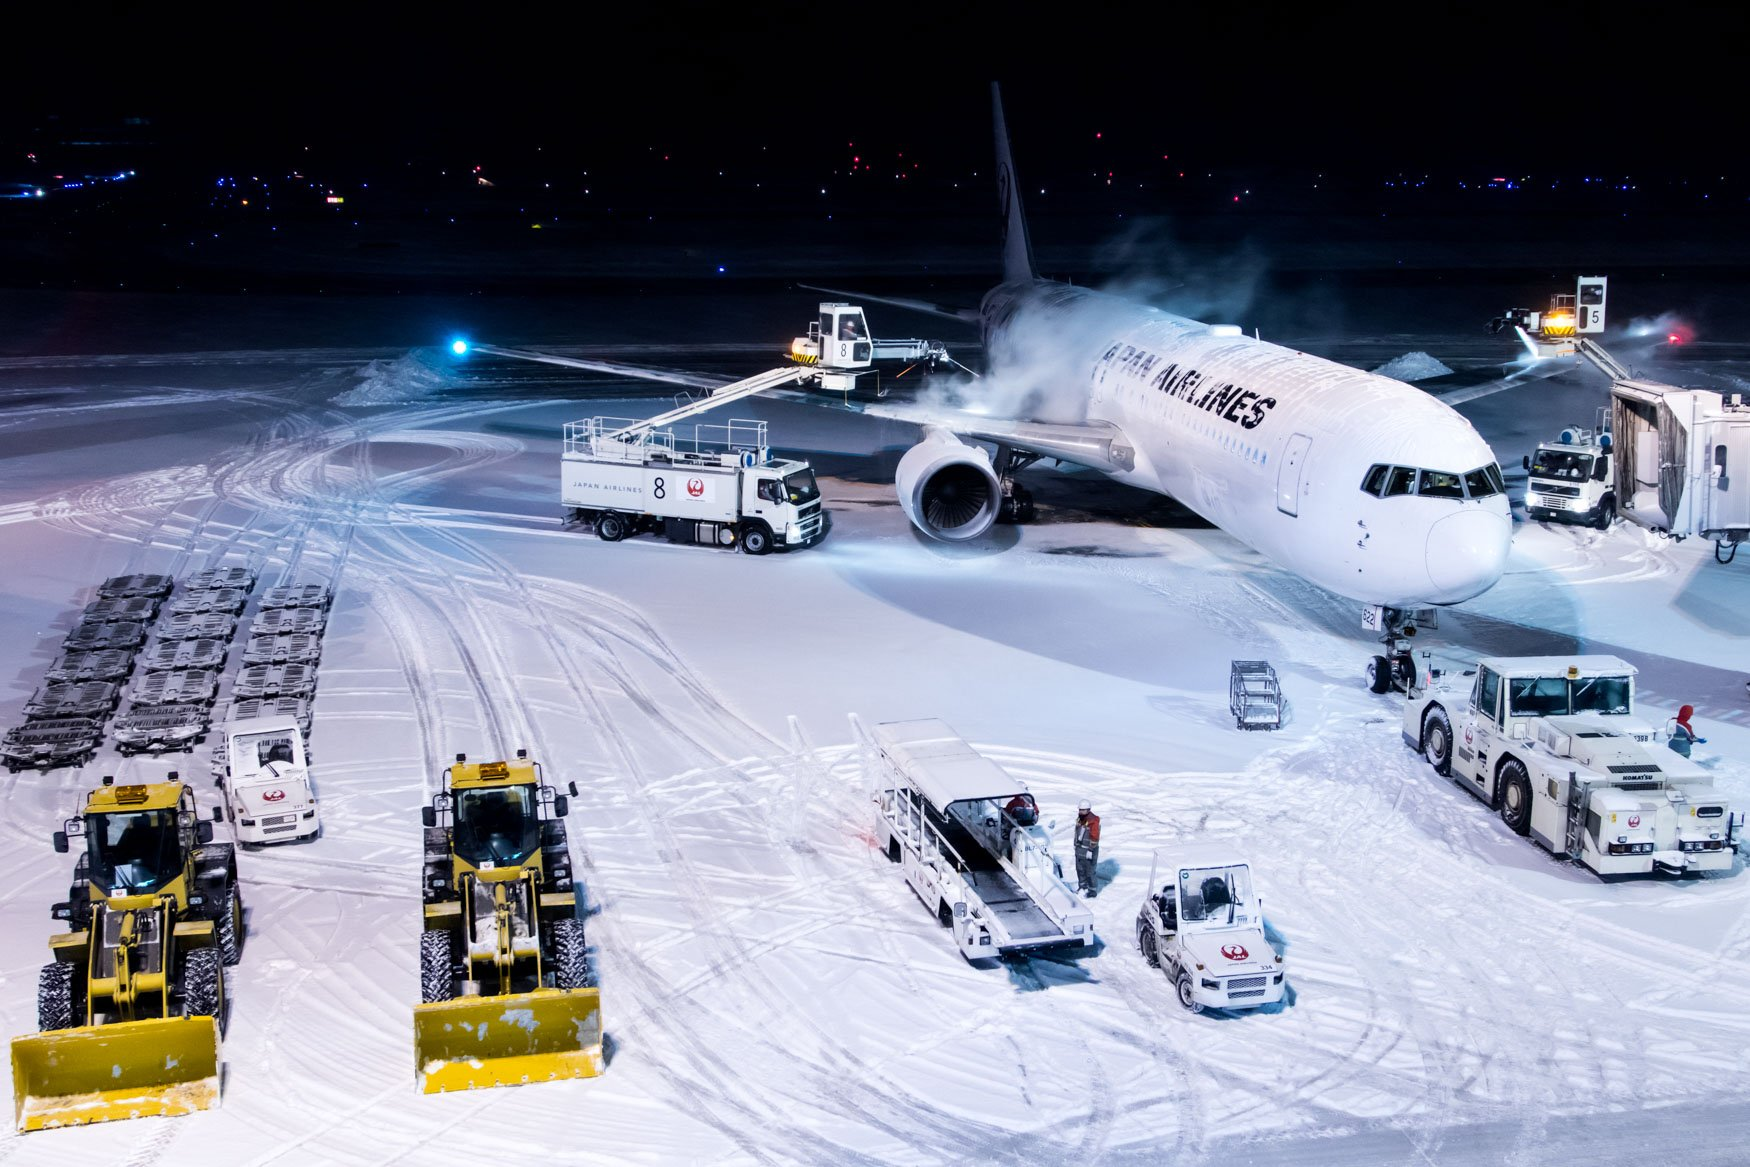 JAL Boeing 767-300